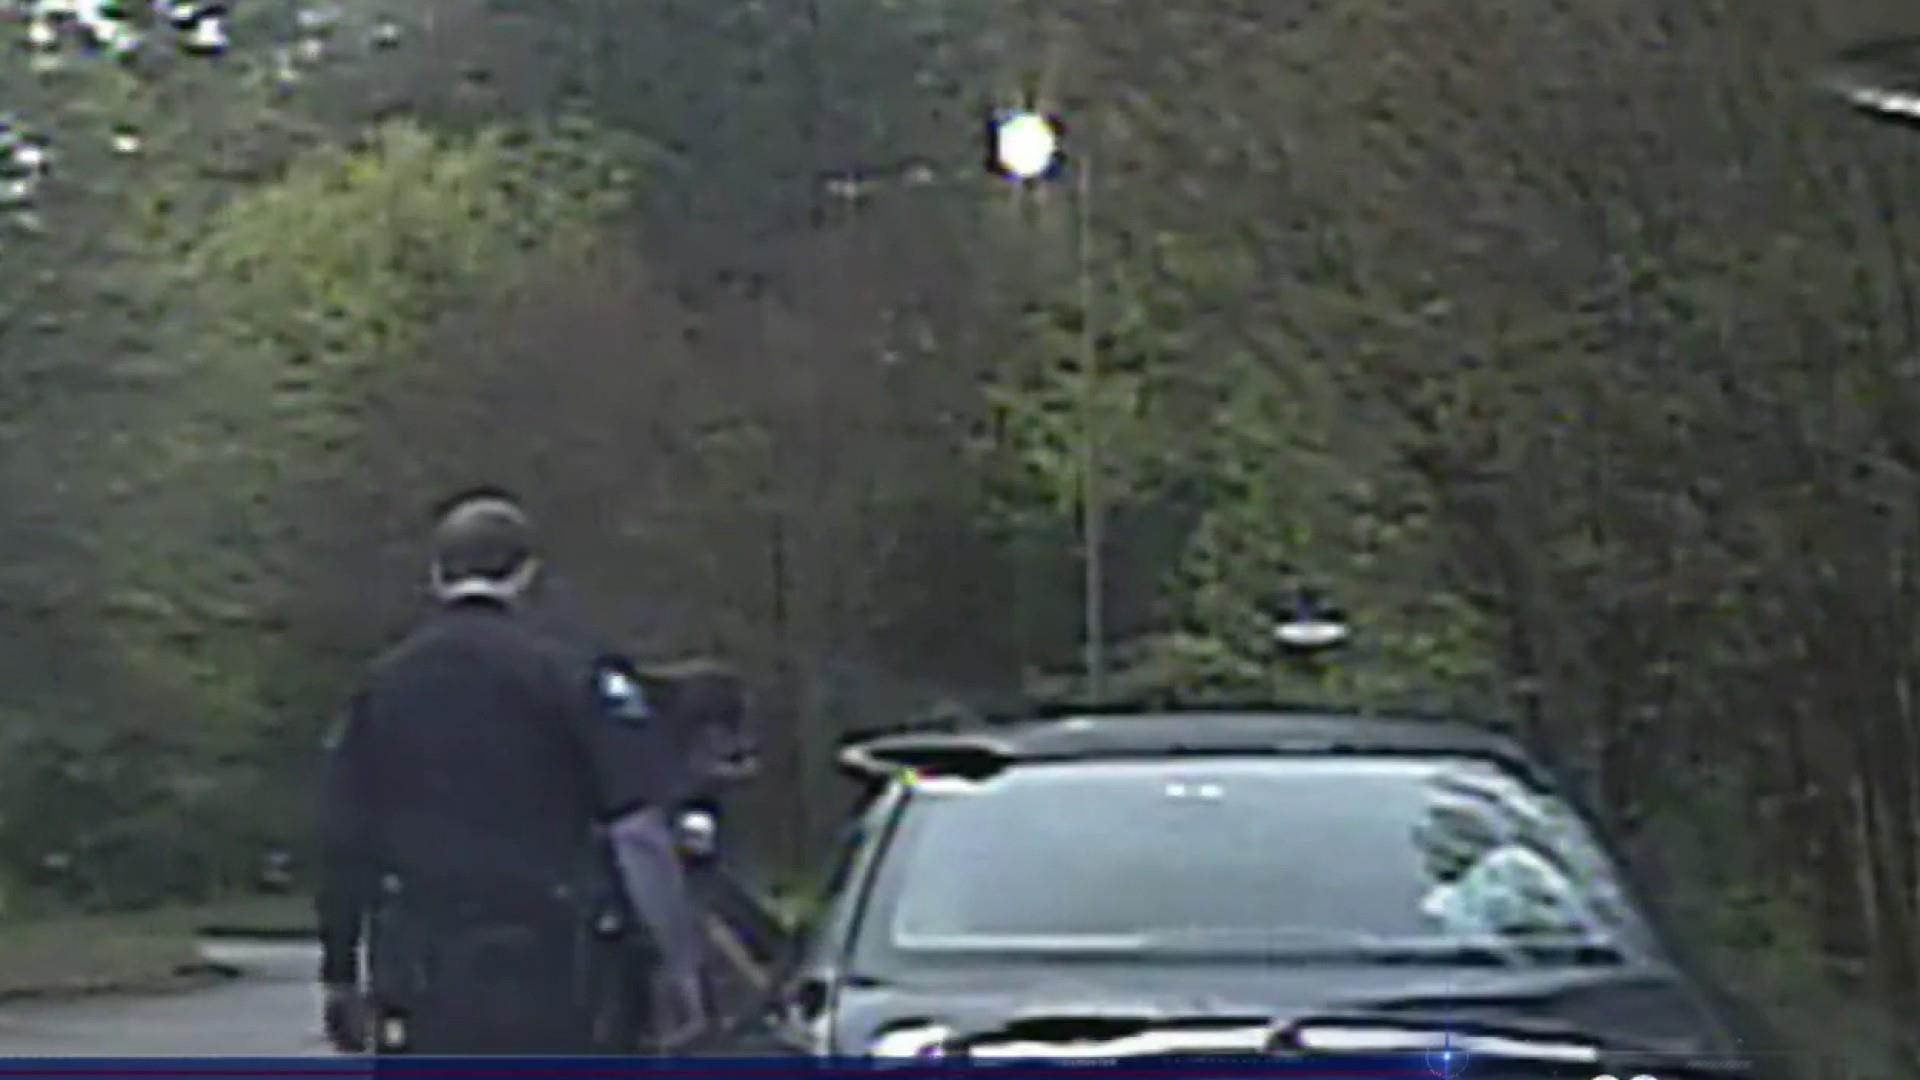 Georgia officers terminated after caught on camera using coin-toss app to determine arrest